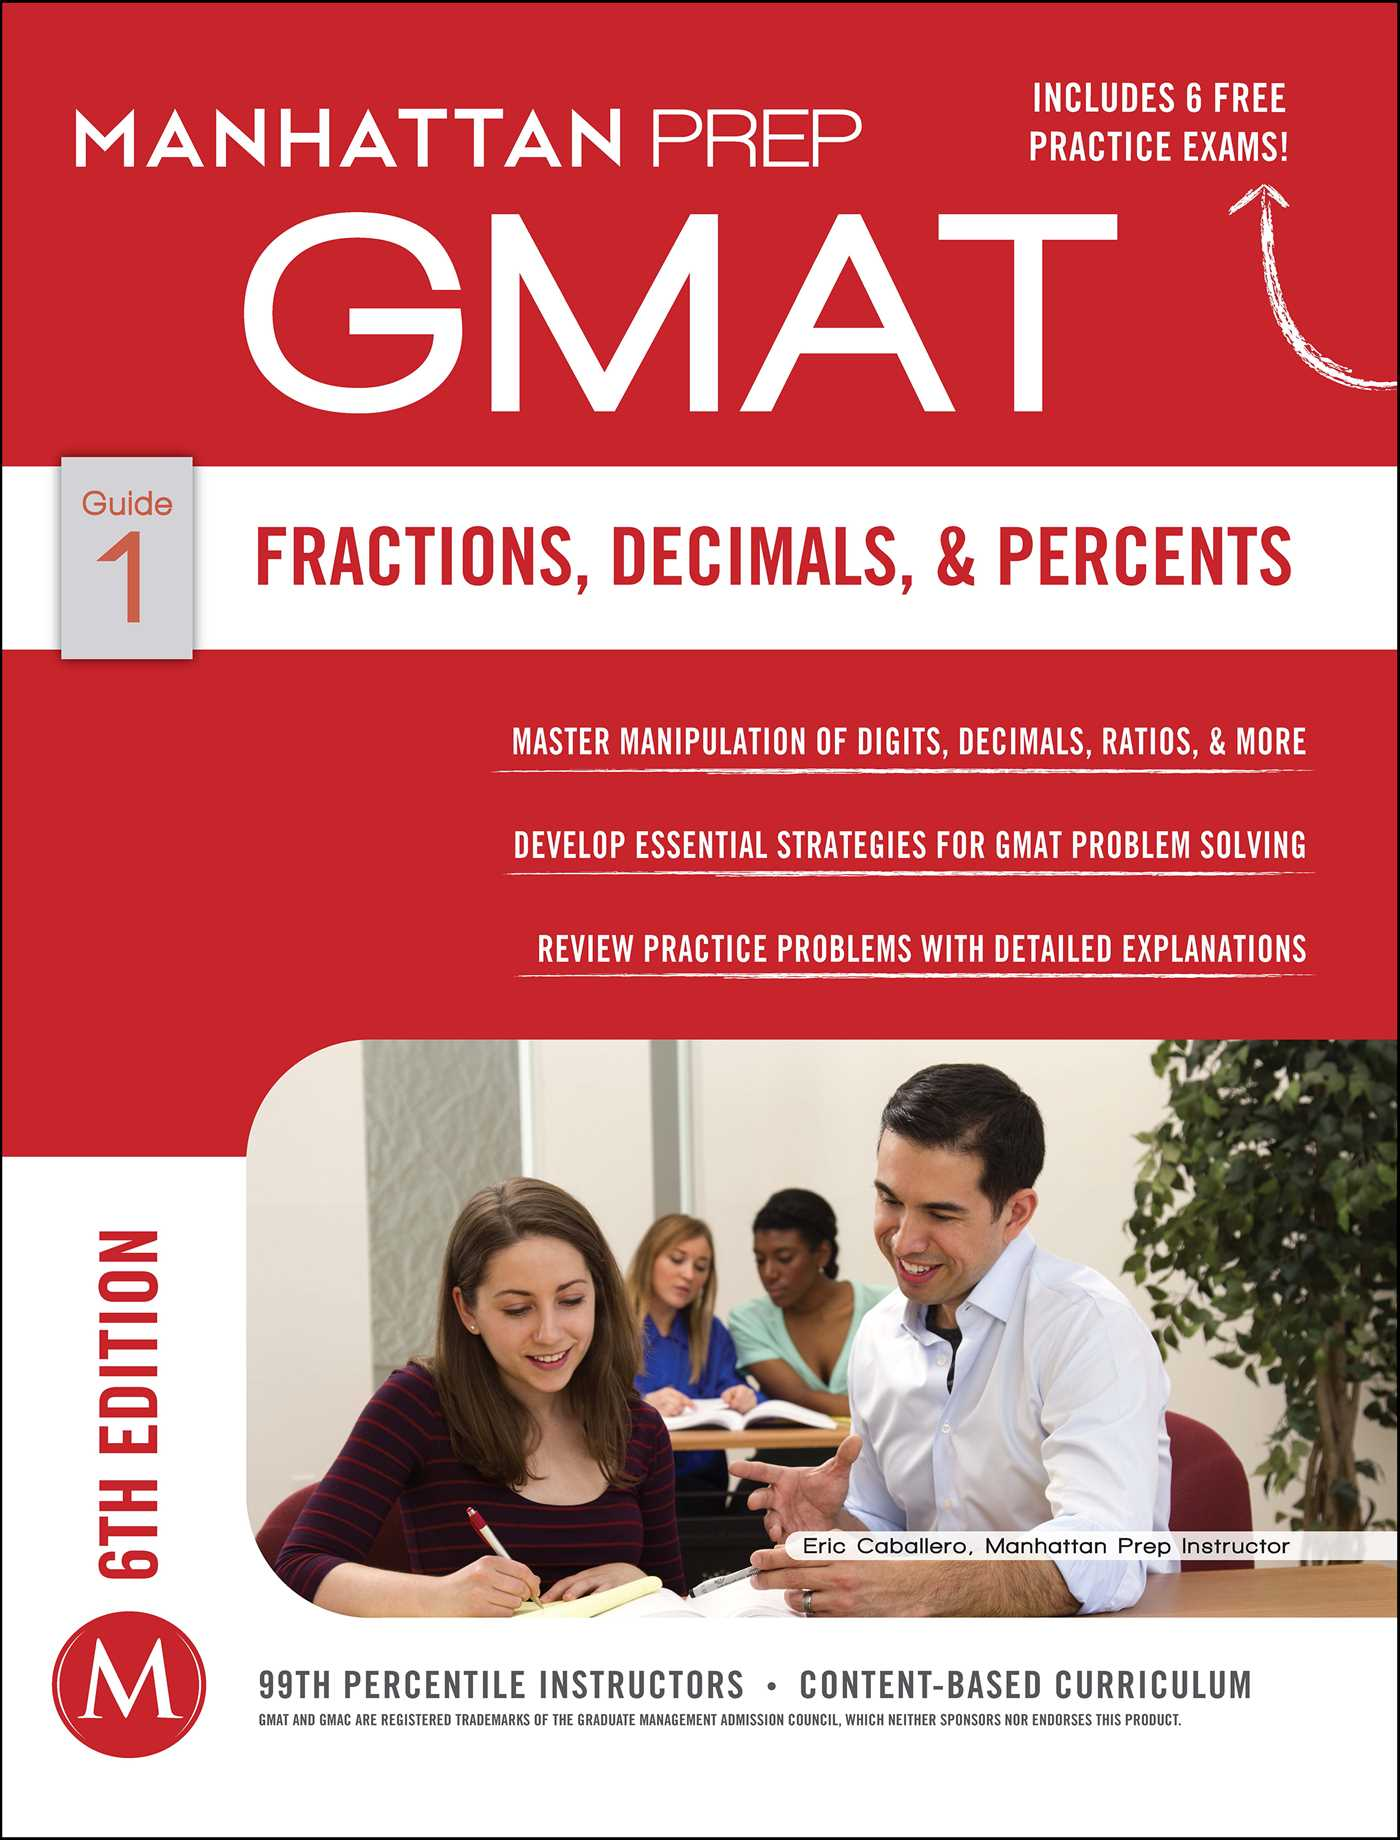 Best GMAT Prep Book | Study.com